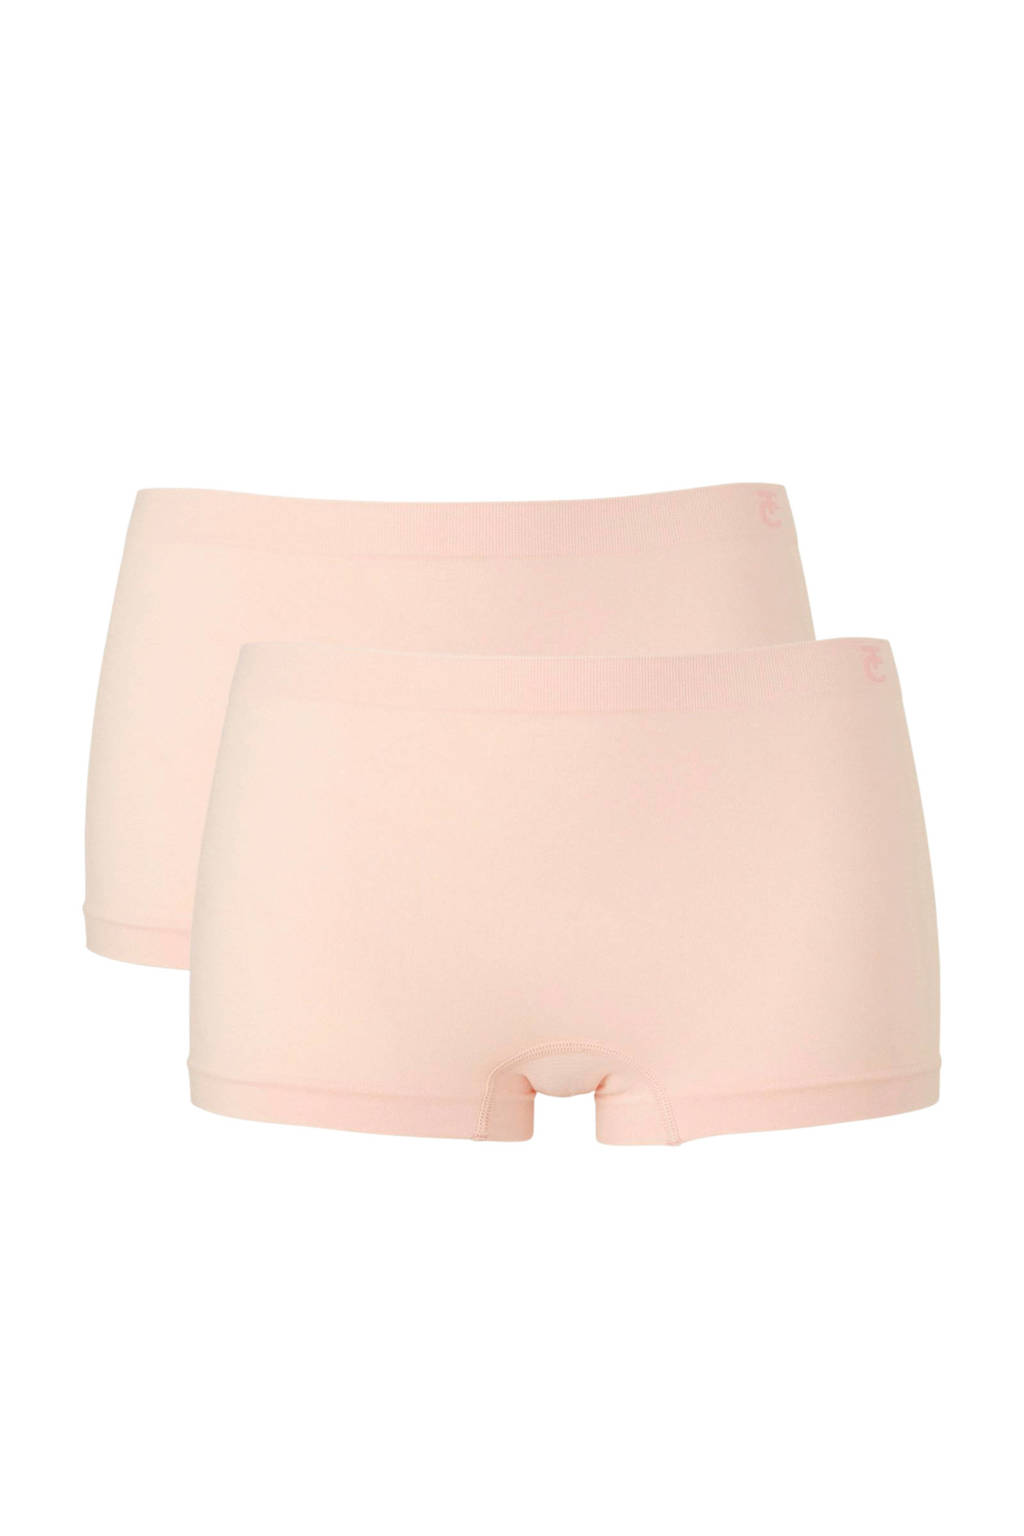 ten Cate short (set van 2) roze, Roze